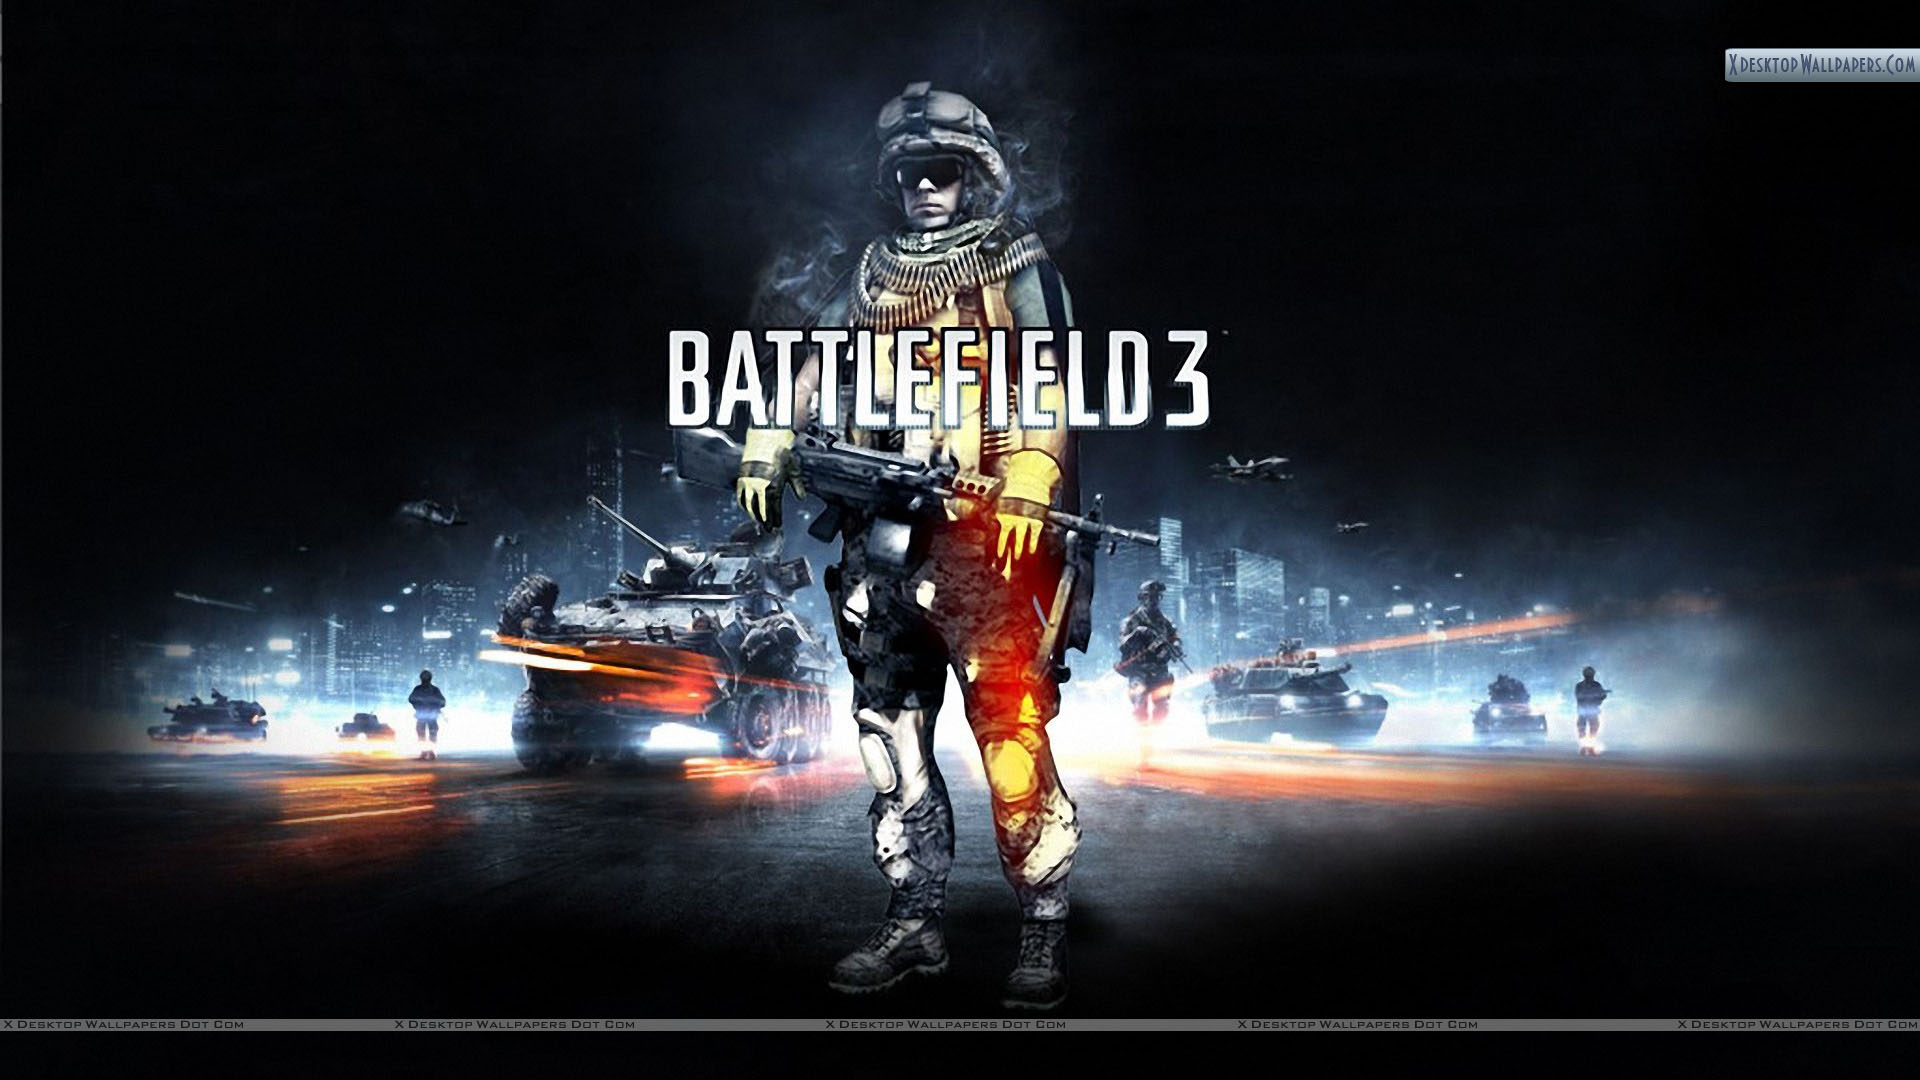 battlefield 3 – poster of a soldier wallpaper